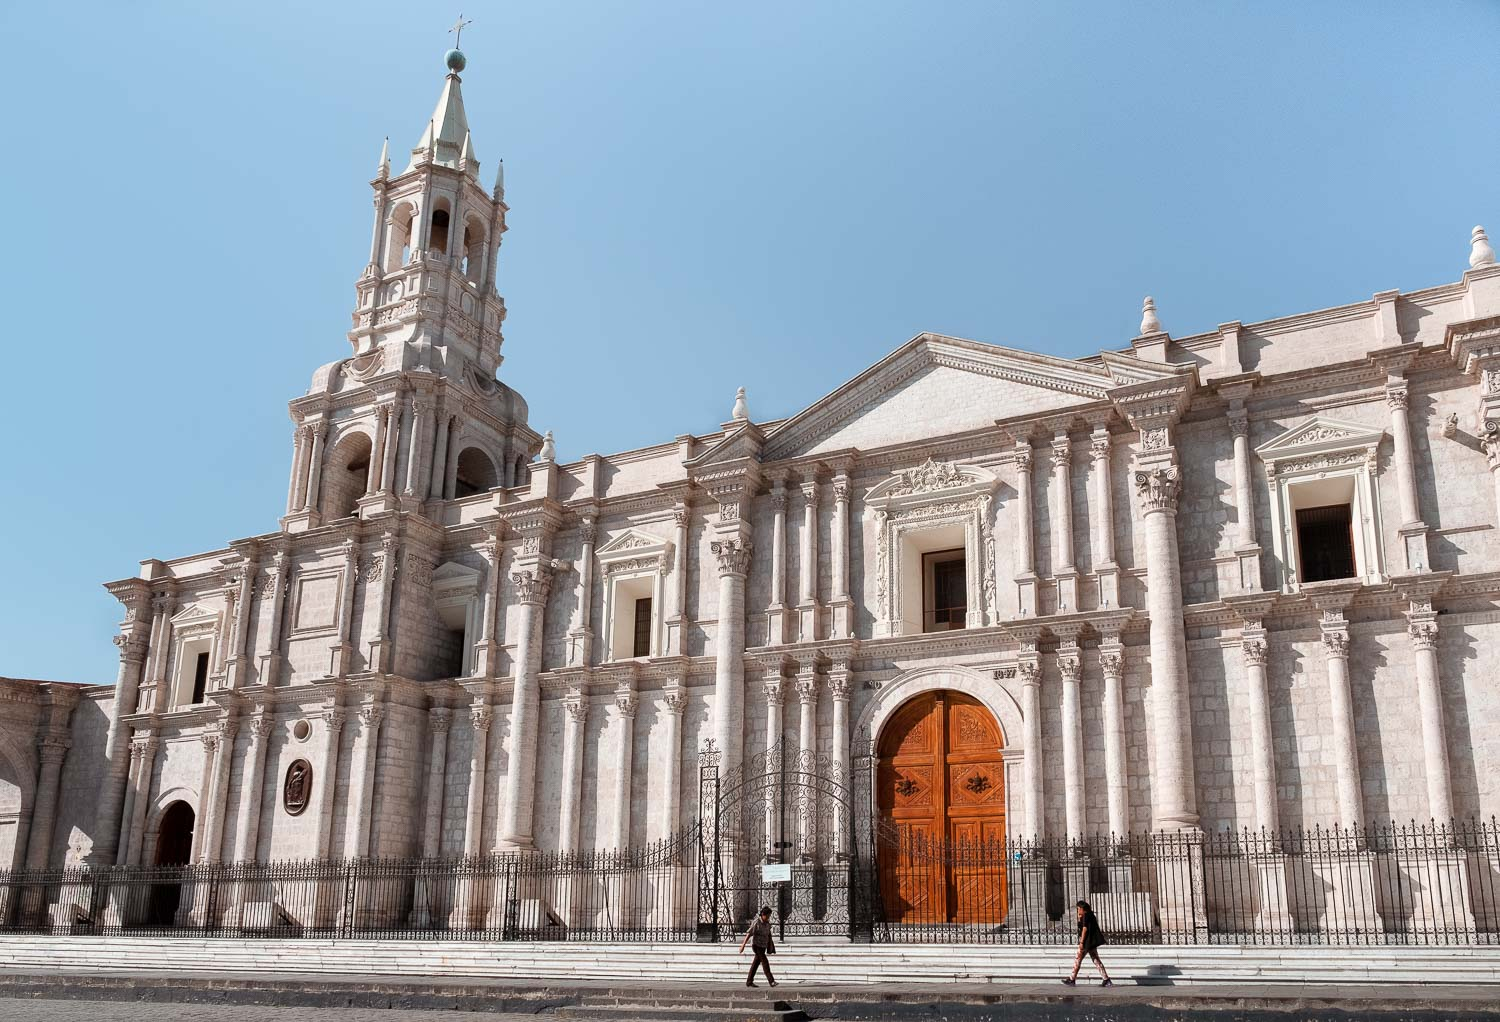 """La Cathedral in Arequipa, Peru. Travel photography and guide by © Natasha Lequepeys for """"And Then I Met Yoko"""". #peru #photoblog #fujifilm"""